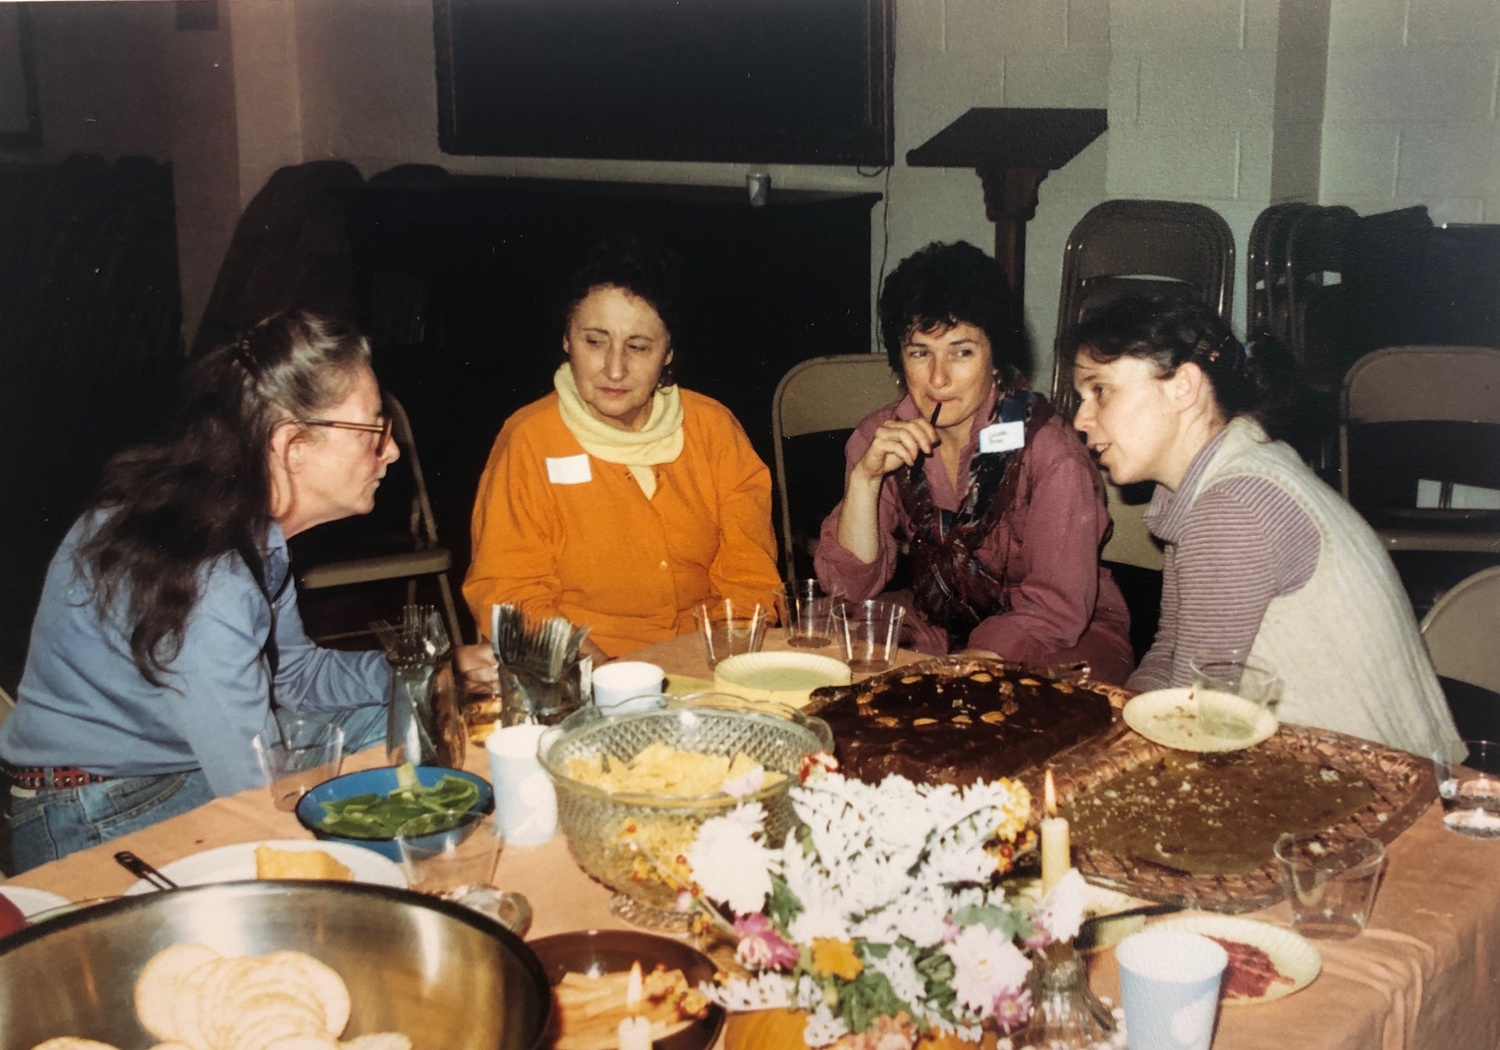 Activists Louise Thompson, Corrine Coleman, Colette Price, and Kathie Sarachild dining in October 1987 at the Park Ave. Christian Church in New York City.